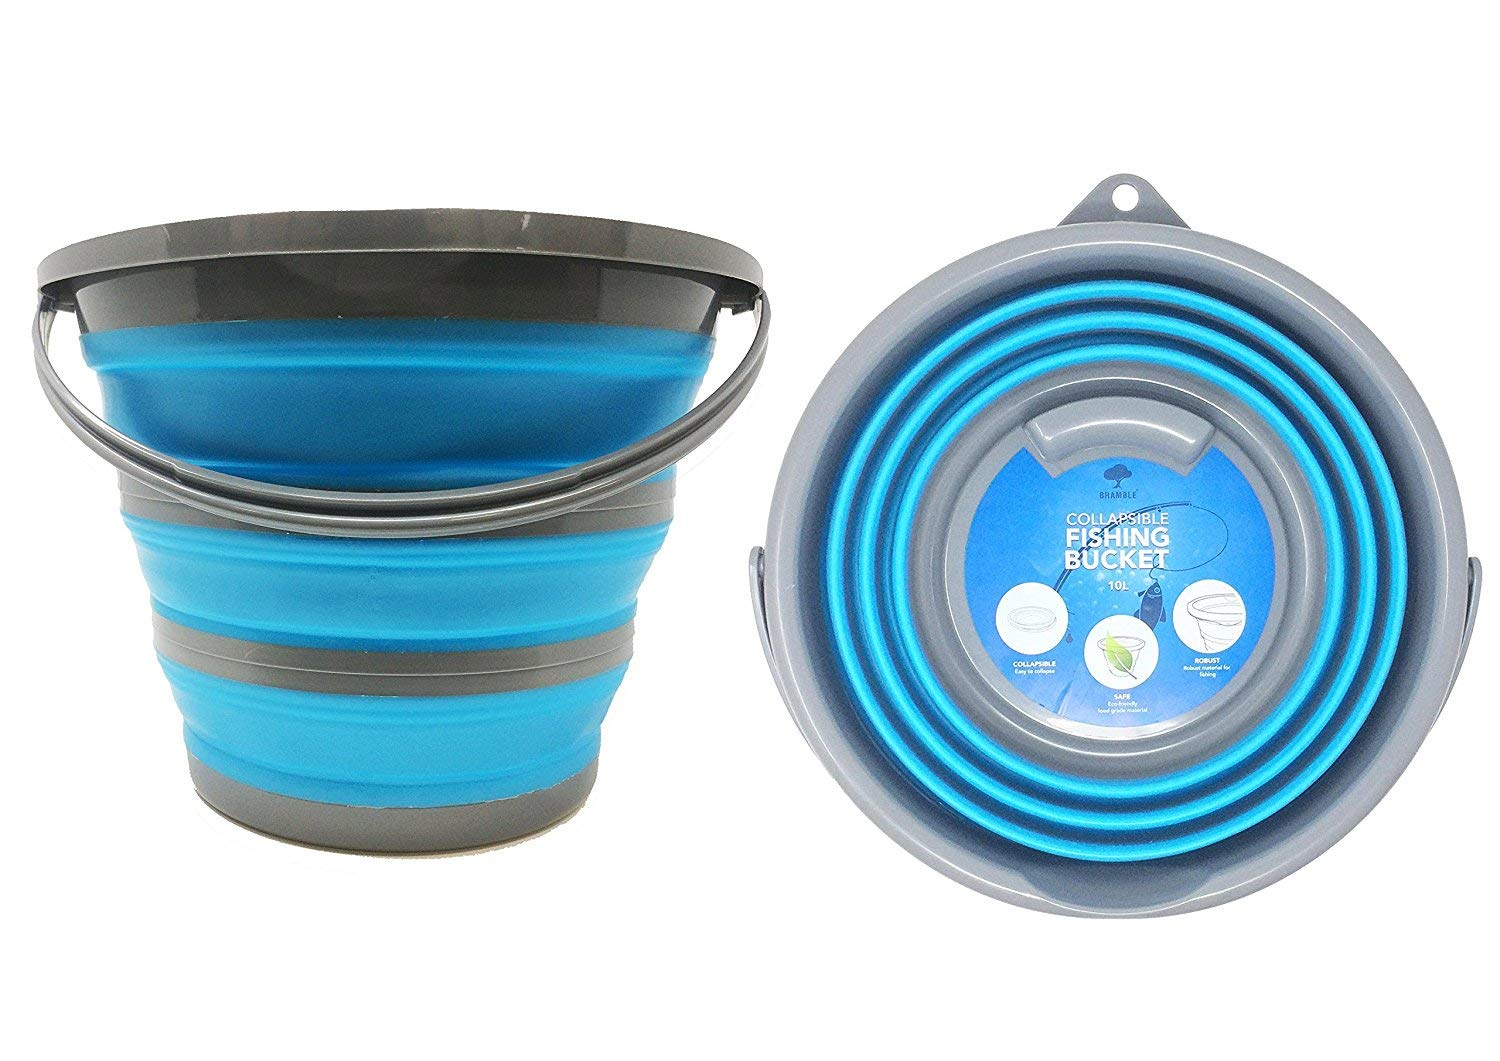 Collapsible Portable Household Bucket - up to 10 Litre Folding Water Storage - Ideal Home Cleaning, Window Washing, Outdoors Activities, Fishing & Camping Bramble